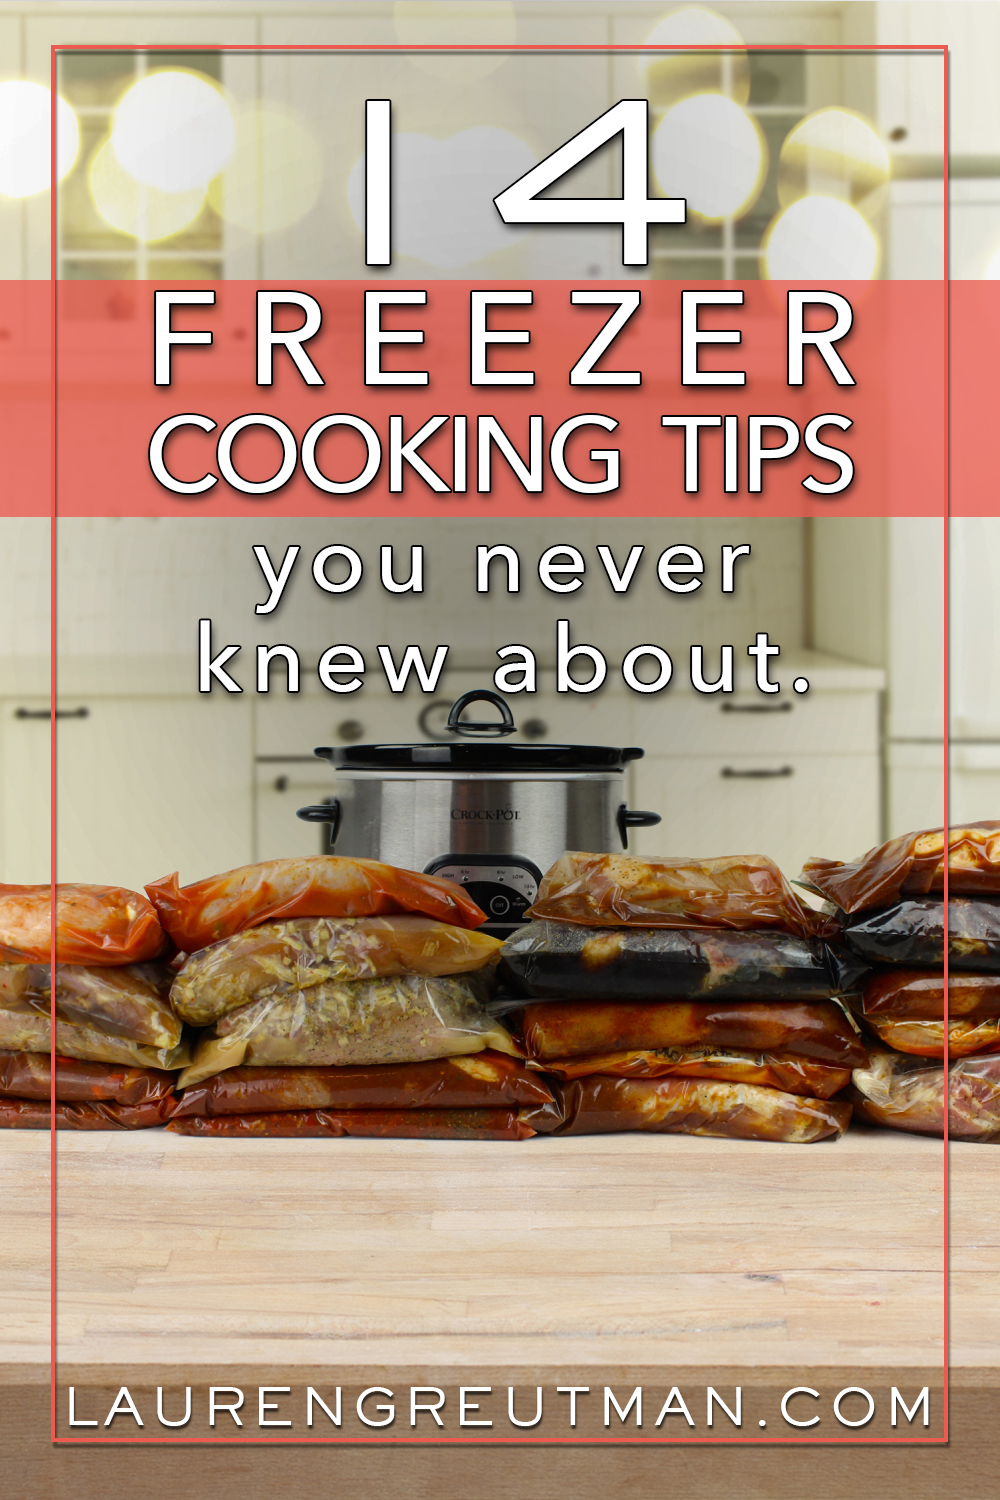 Whether you're a Freezer cooking beginner or veteran, implementing these Freezer Cooking Tips has saved me time, frustration, mess, and money.